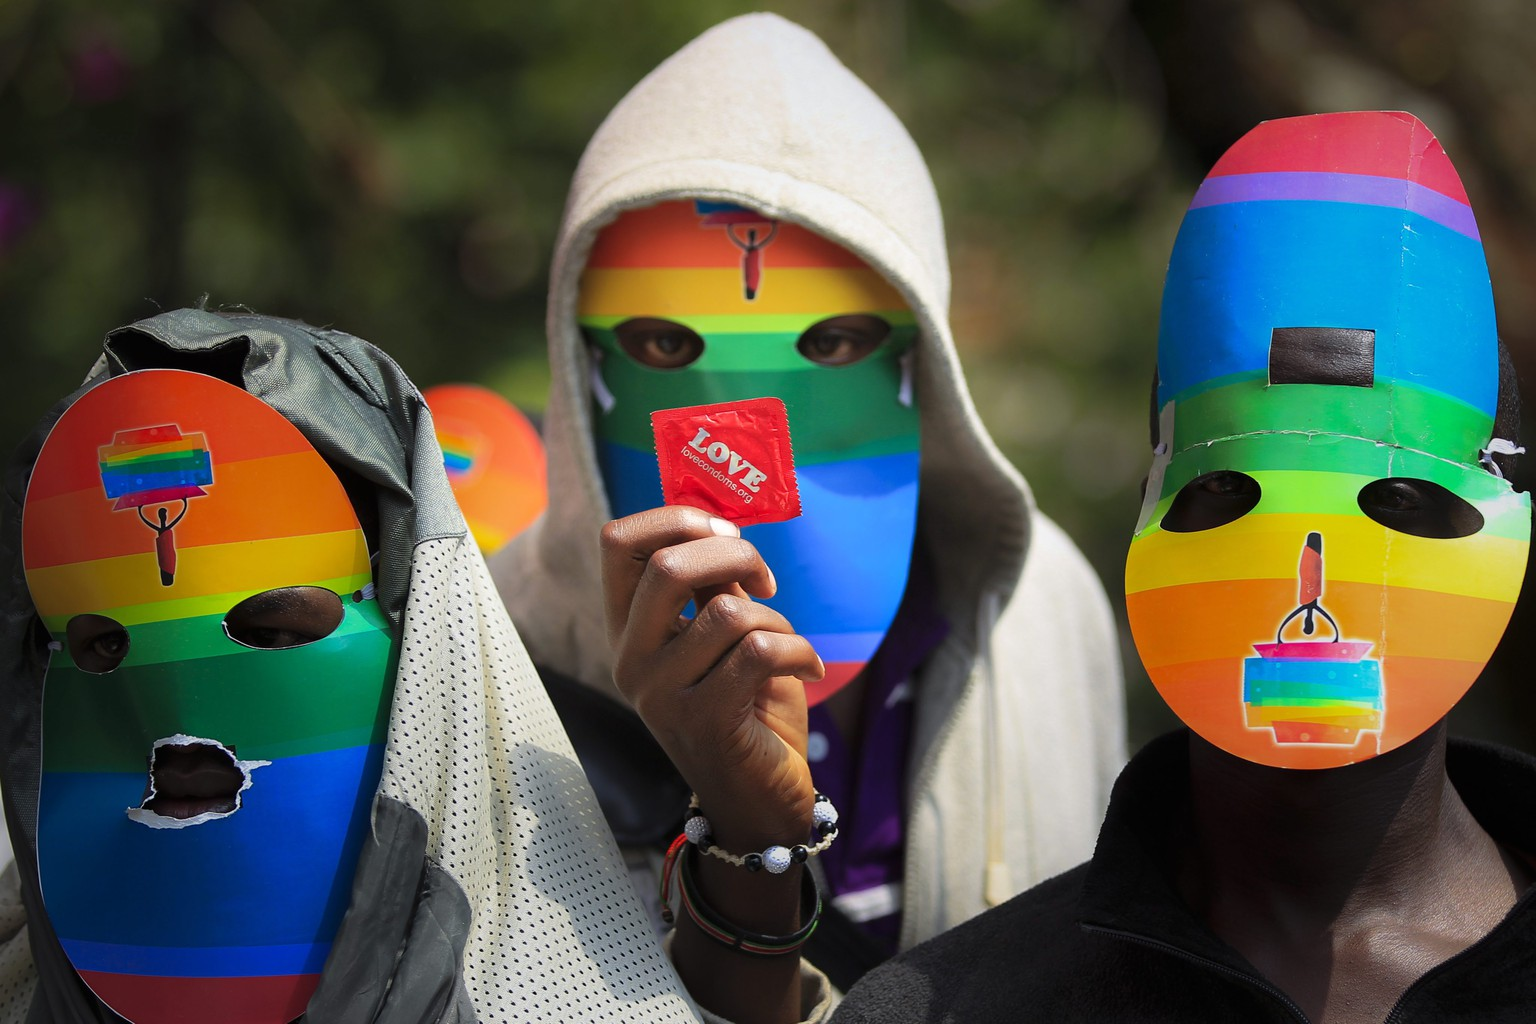 epa04098849 (FILE) A file picture dated 10 Februatry  2014 shows a masked Kenyan supporter of the LGBT community holds a condom as he joins others in protest against Uganda's anti-gay bill in front of the Ugandan High Commission in Nairobi, Kenya. Uganda's President Yoweri Museveni signed into law on 24 February 2014 anti-gay legislation that allows homosexuals to be punished with up to life in prison. The law has come under strong criticism abroad, with US President Barack Obama warning that it could 'complicate' Uganda's relations with one of its biggest aid donors.  EPA/DAI KUROKAWA *** Local Caption *** 51221749